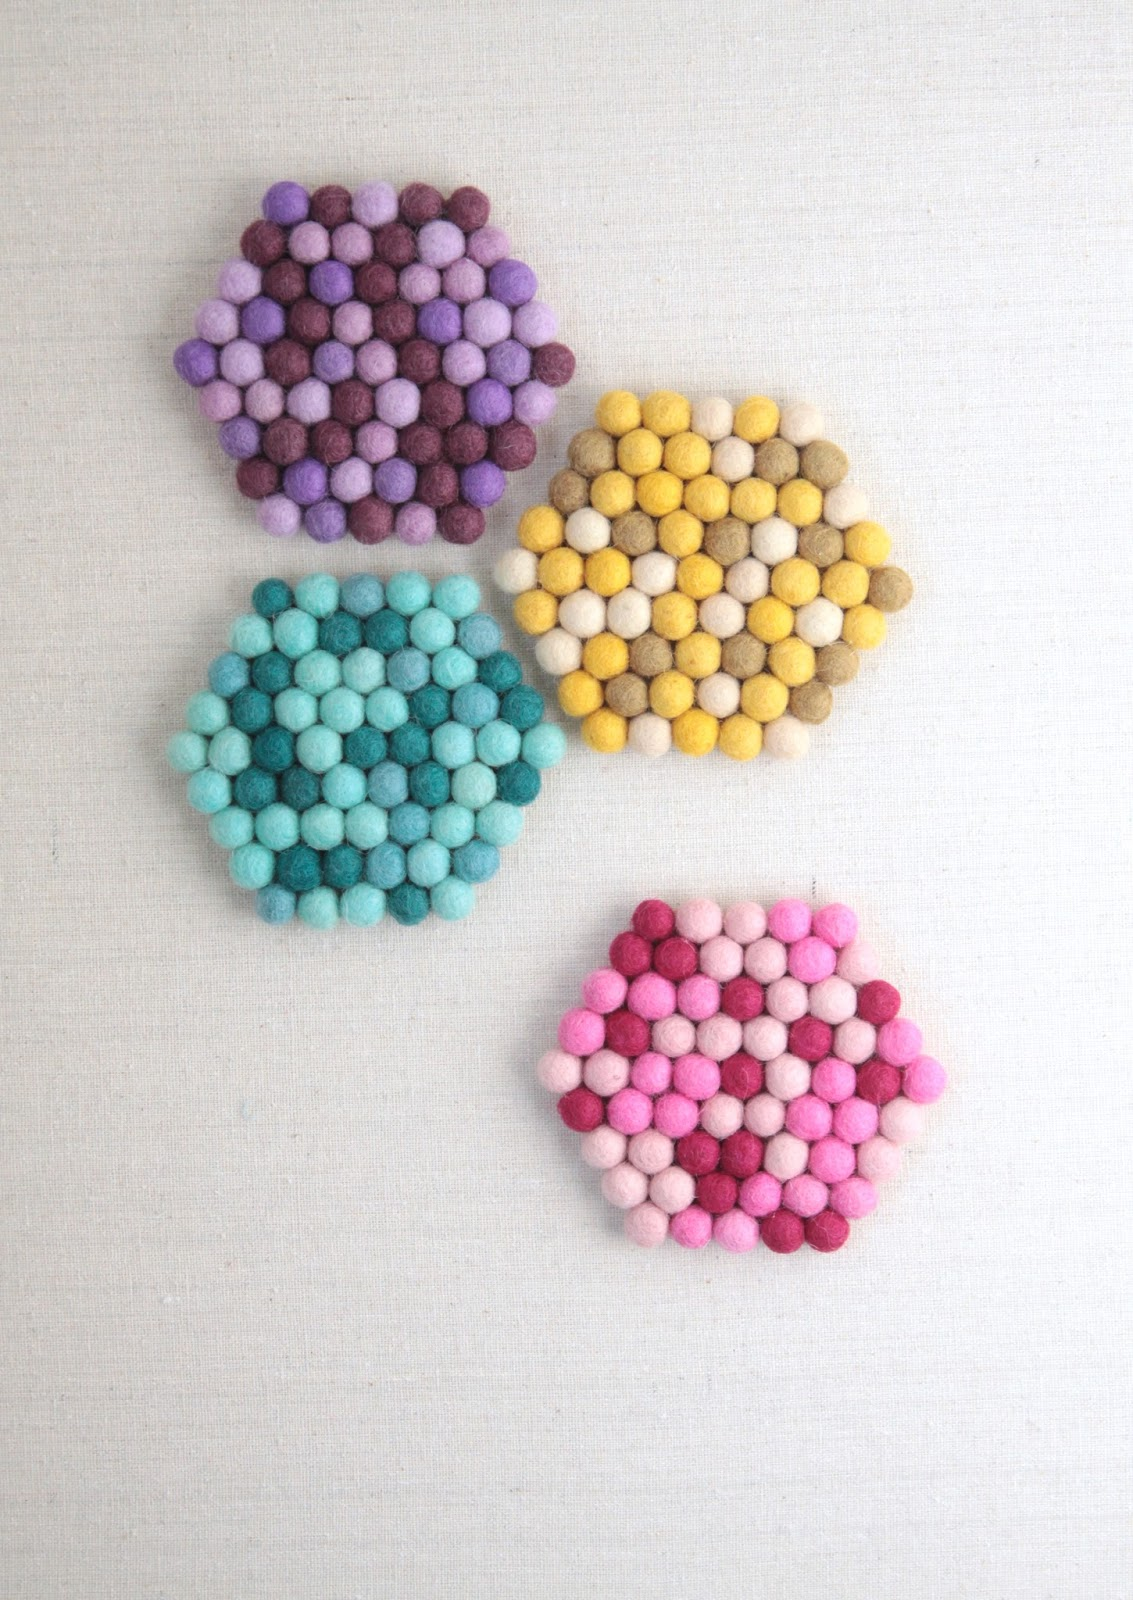 Hexagon Trivets // Felt Balls // Benzie Design